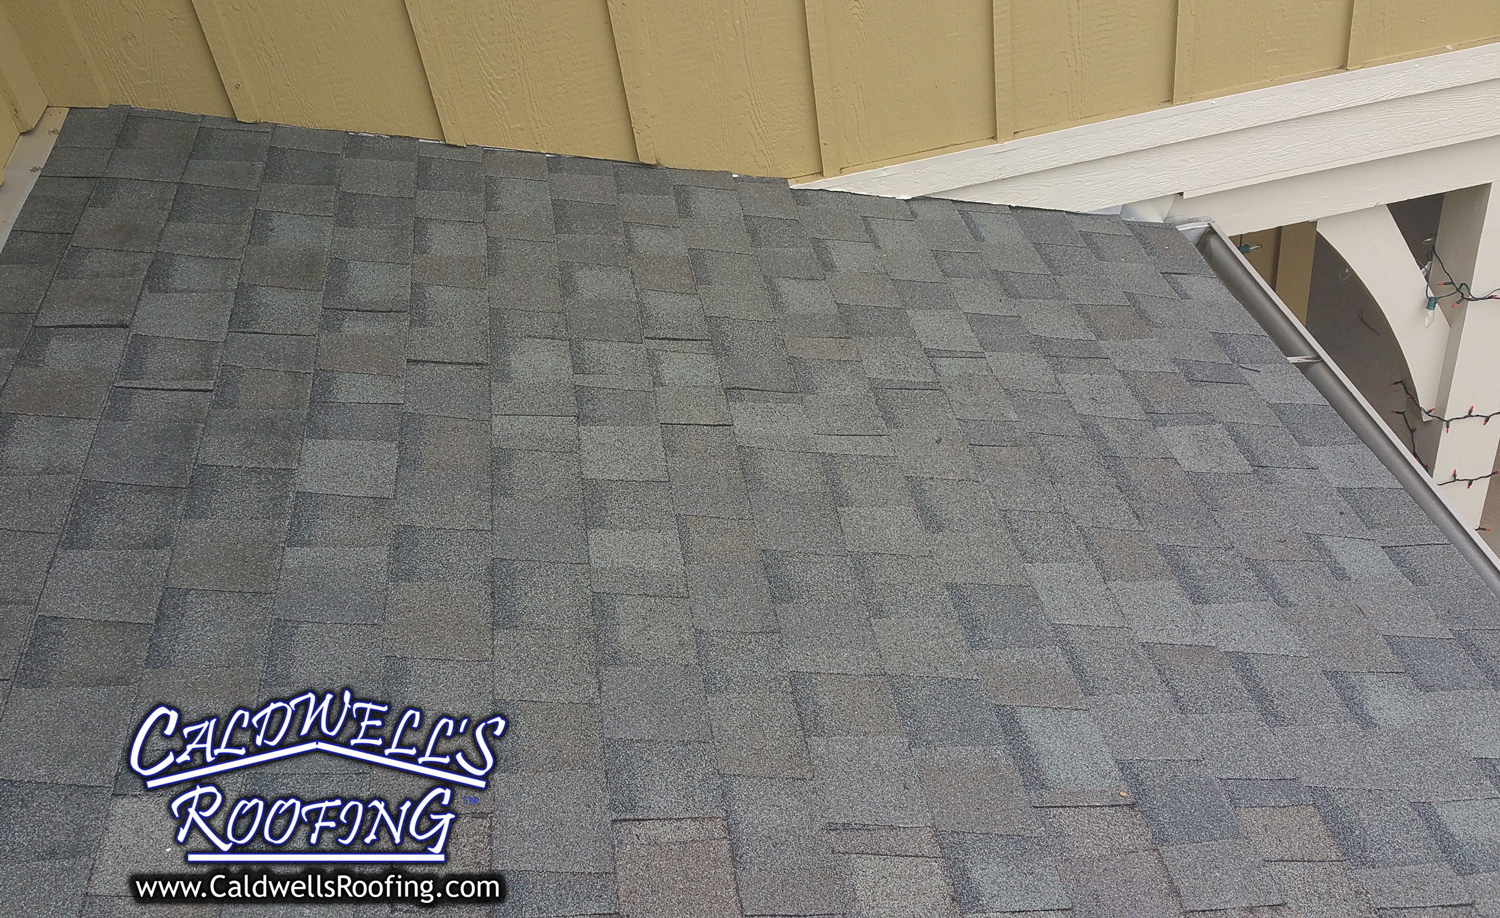 Wrapping Up the Roof Repair with New Shingles, Carefully Matched to the Brand and Color of the Previous Shingles